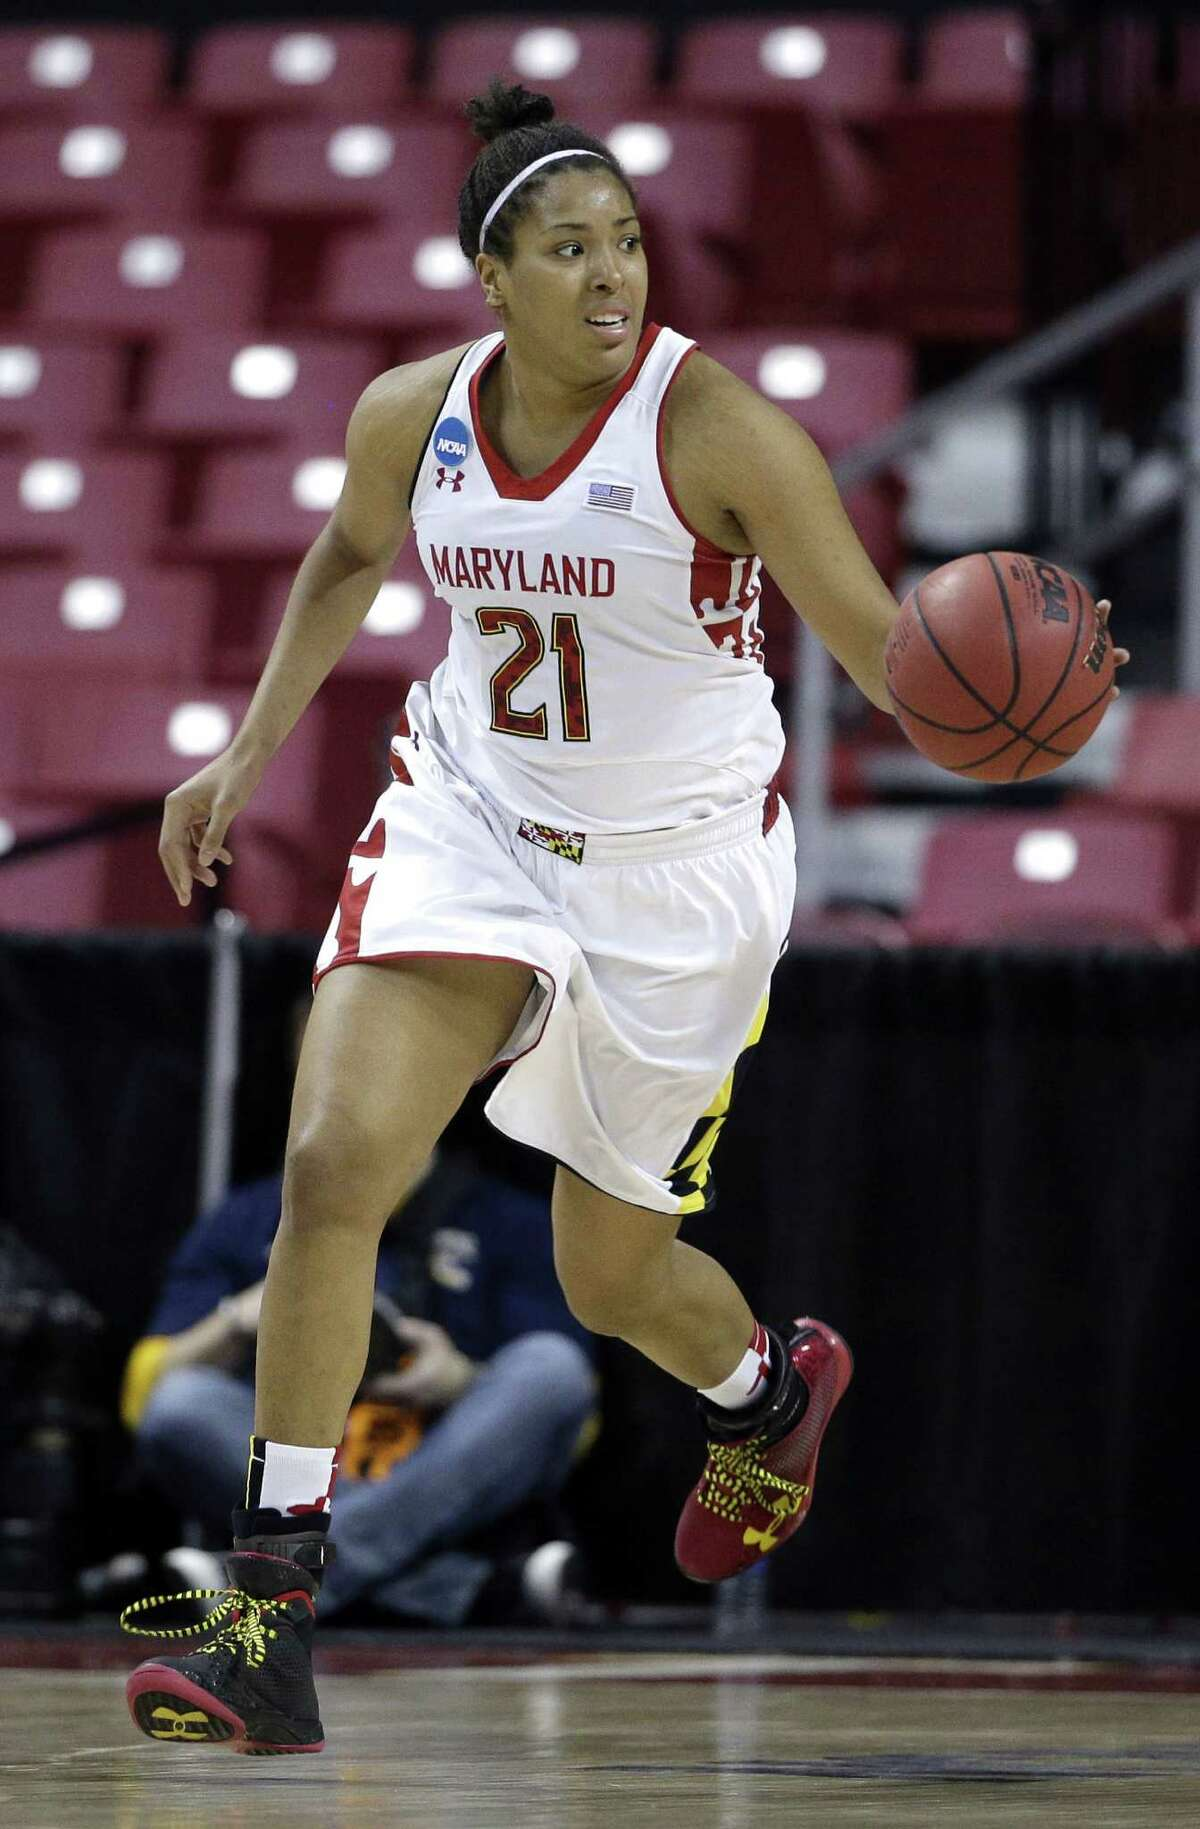 Maryland's Tianna Hawkins could be an option if the Silver Stars go for size.